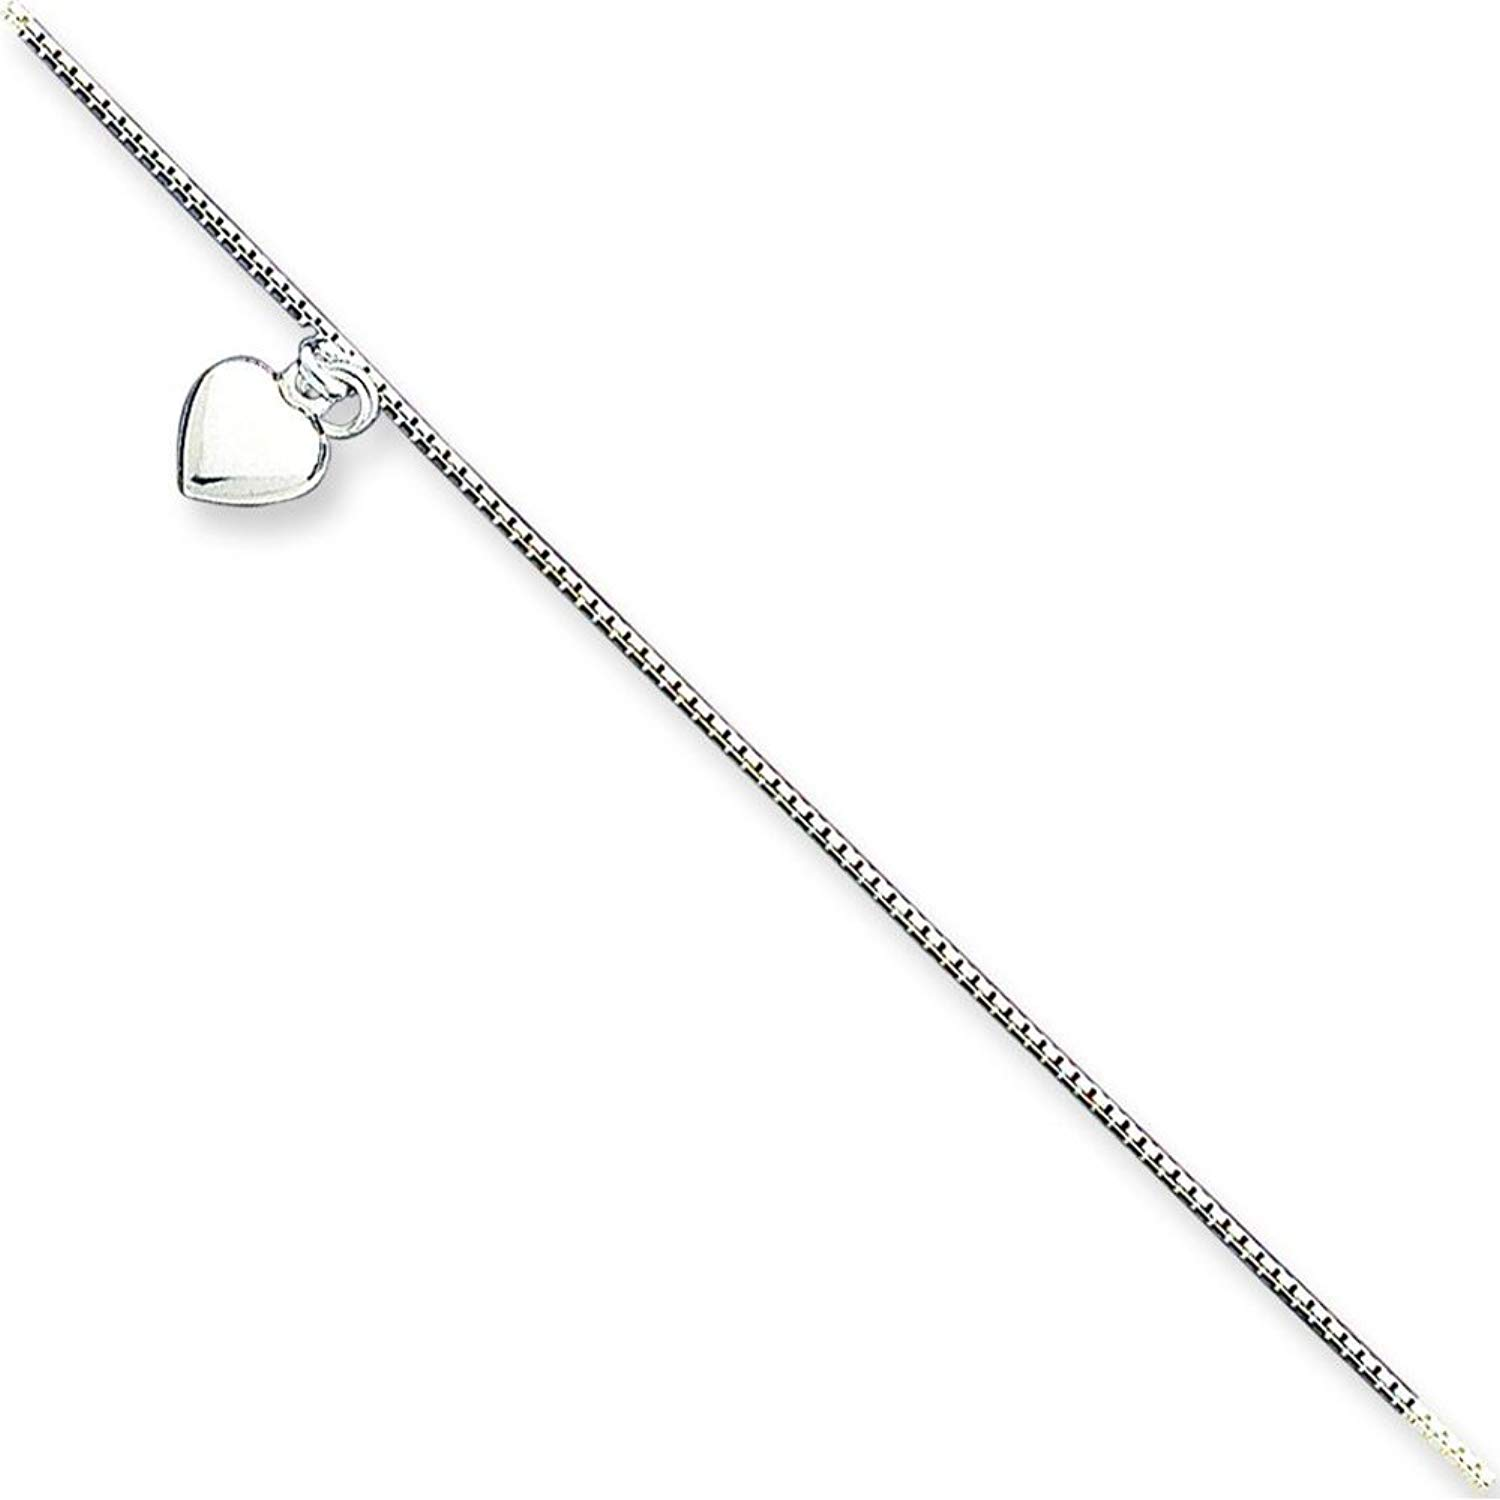 Finejewelers Sterling Silver 10 inch Polished Hearts Anklet Adjustable To 9